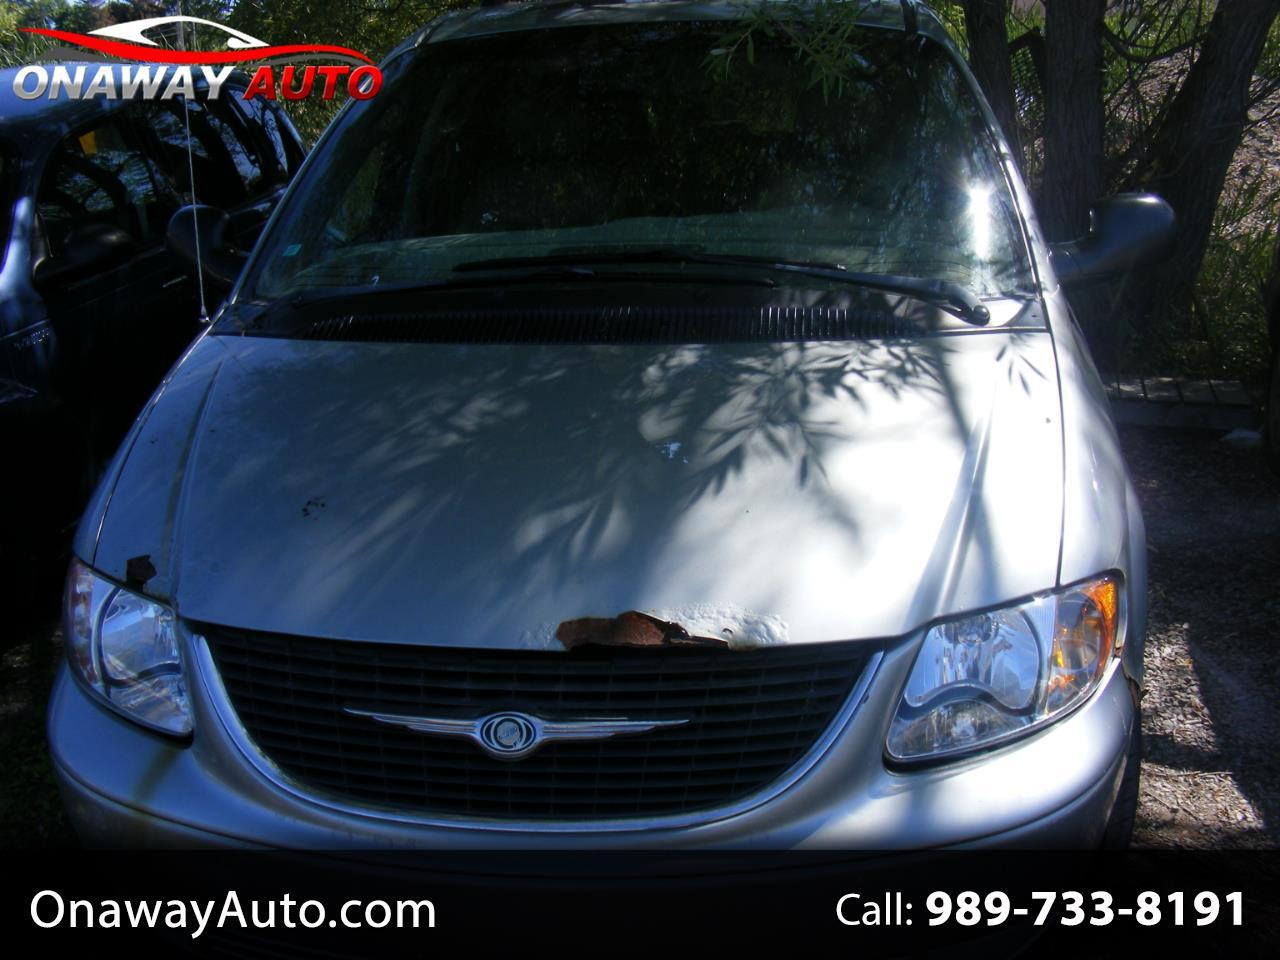 2003 Chrysler Town & Country 4dr LXi FWD